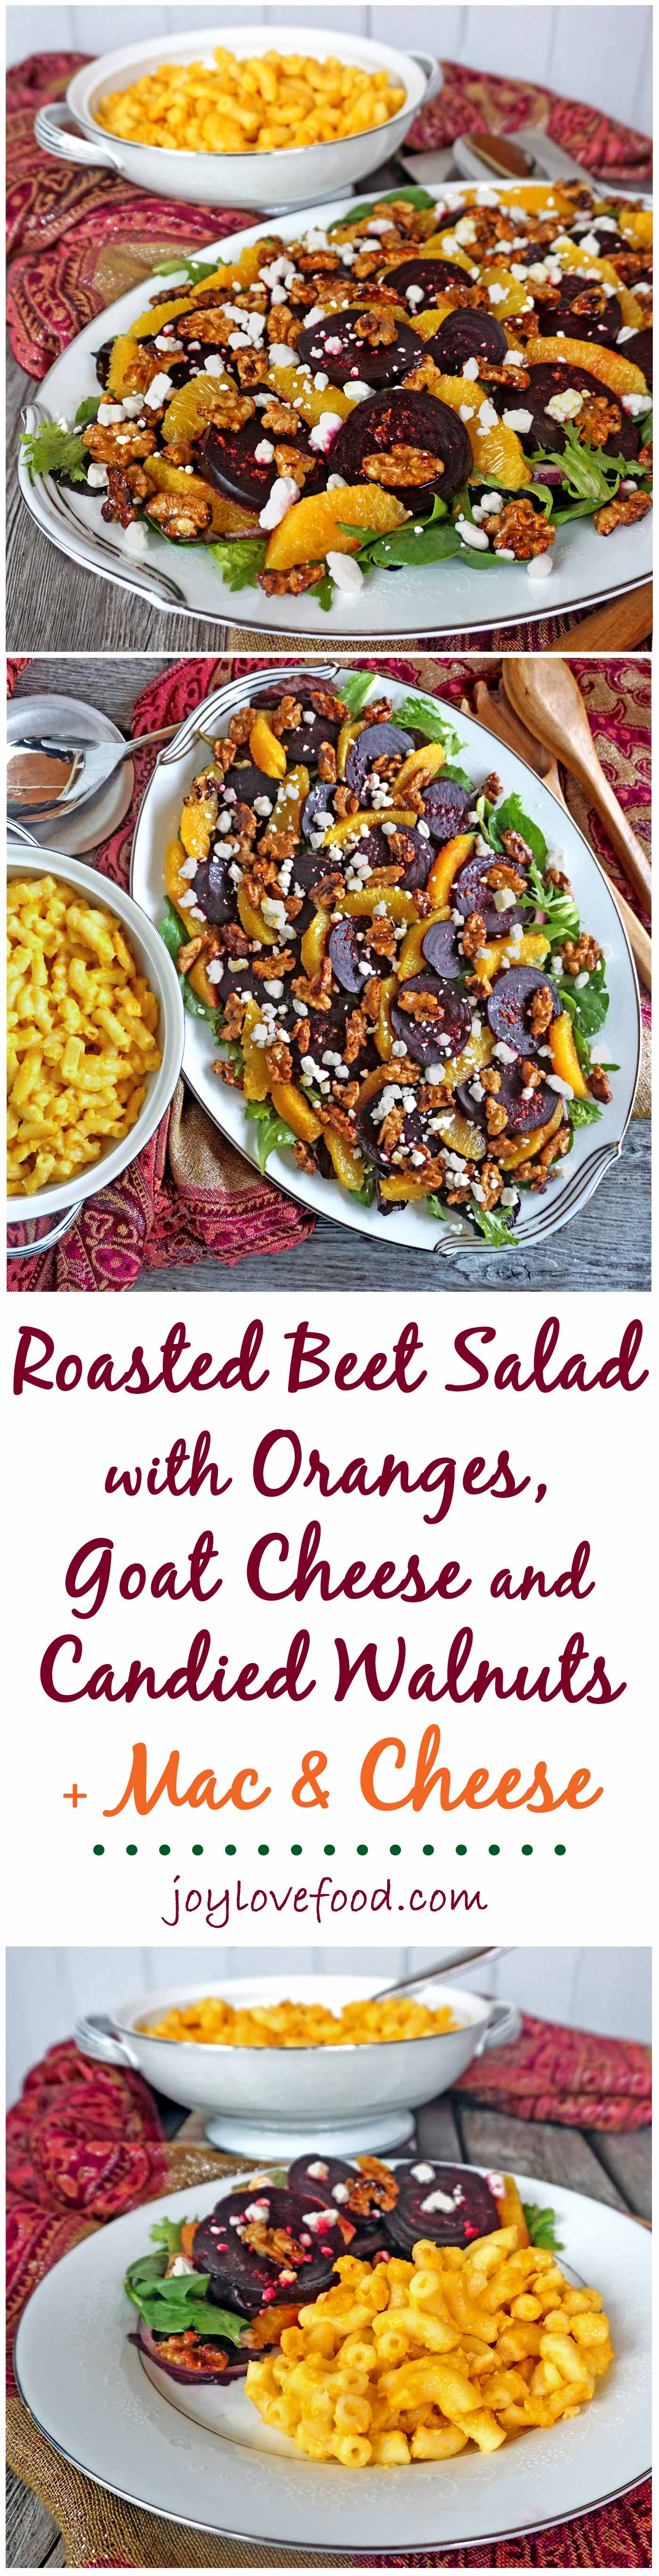 Roasted Beet Salad with Oranges, Goat Cheese and Candied Walnuts along ...